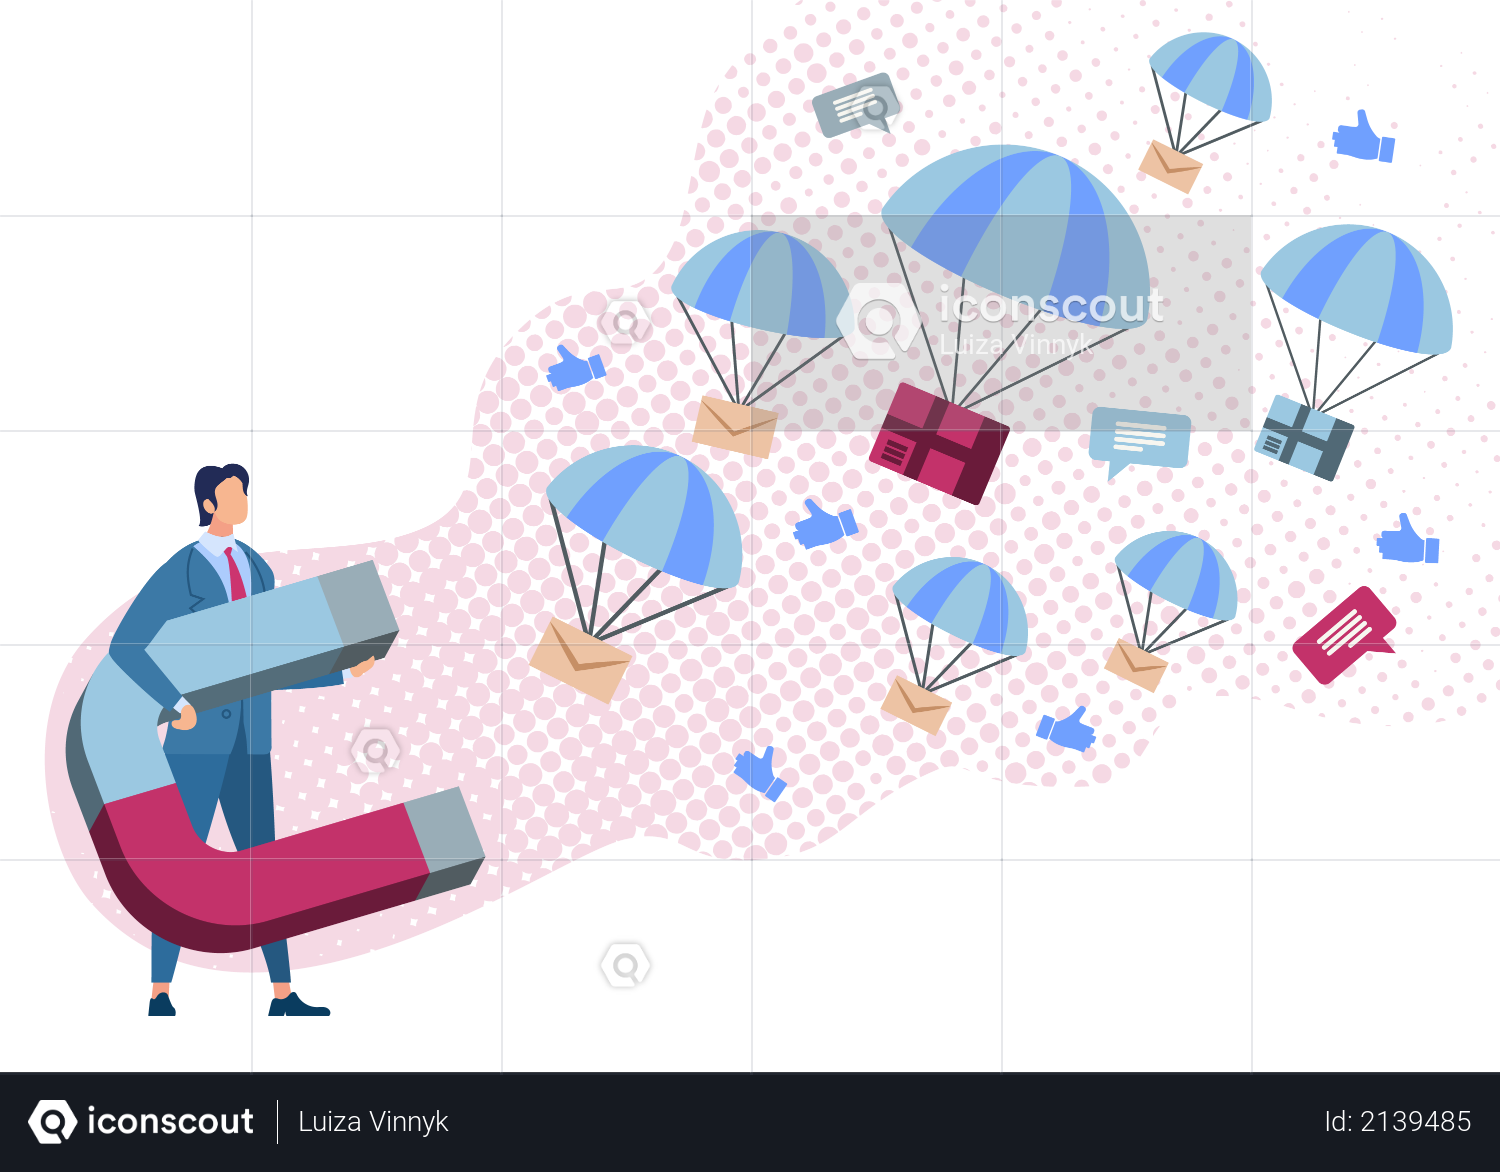 Group Mailing, Attracting New Clients with Magnetic Marketing Strategy Illustration